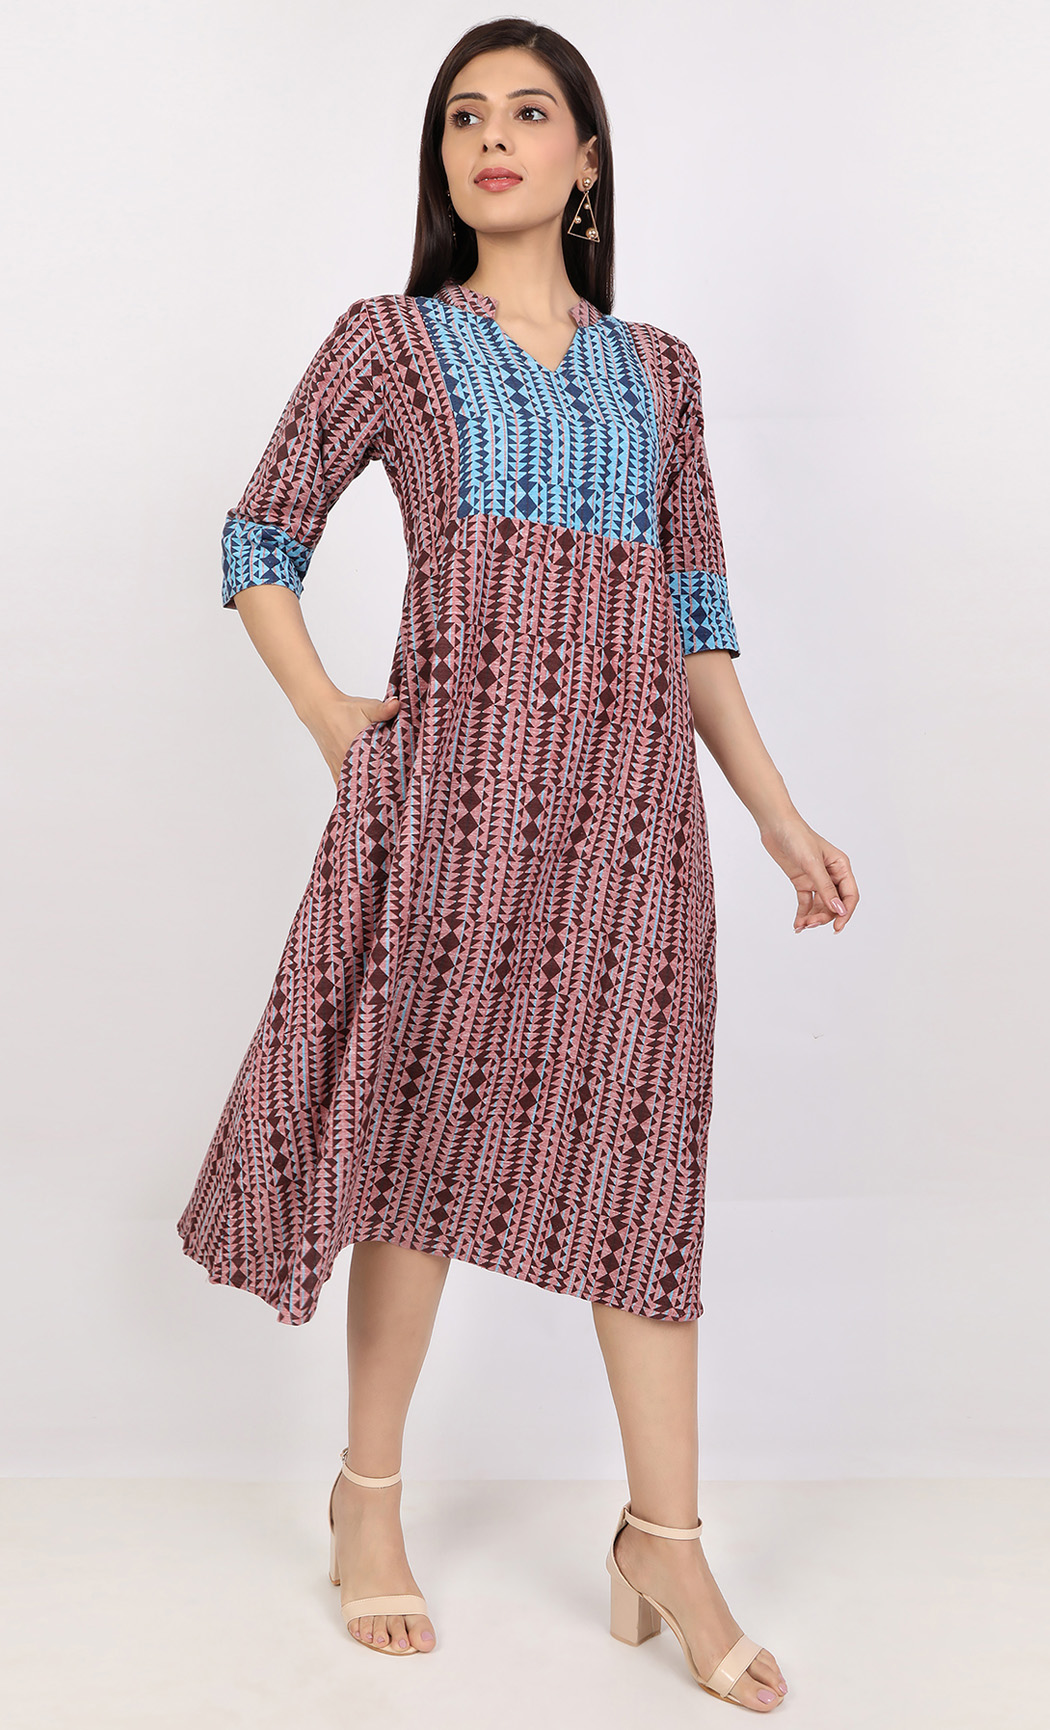 Blue and Maroon A-line Block Printed Dress. Buy Online